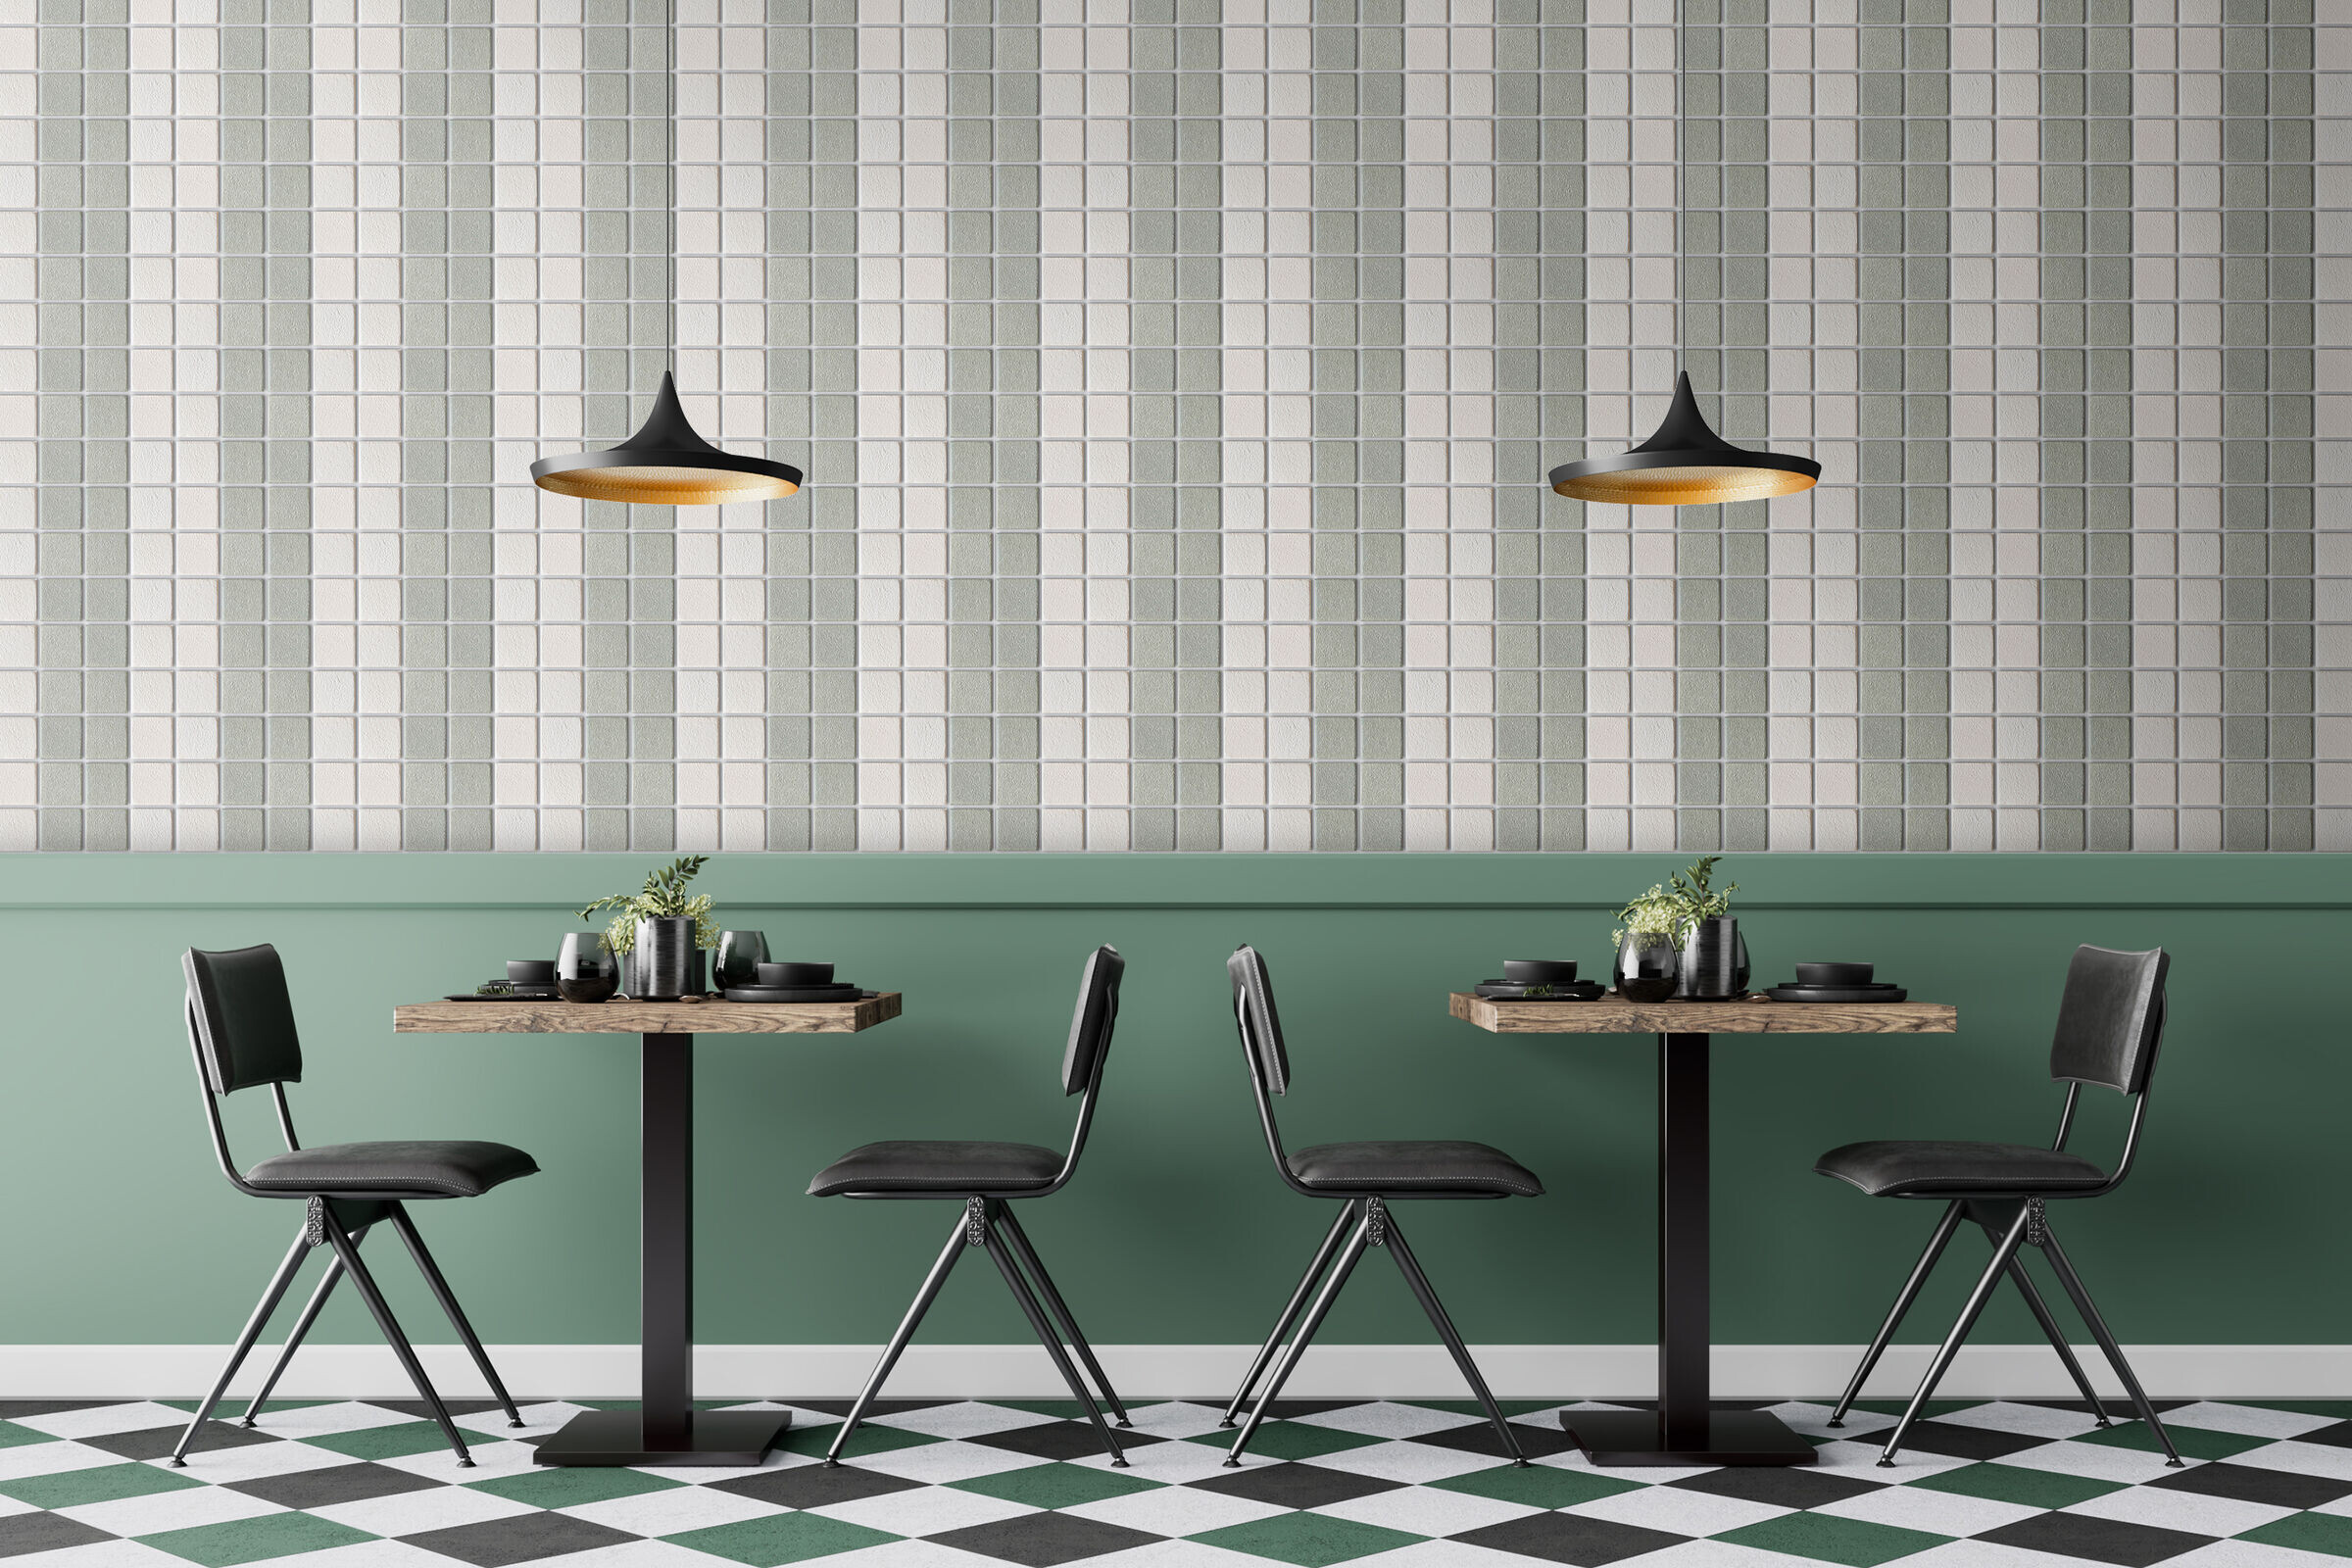 Wall decoration and sound absorption, a perfect solution to design classy amd timeless interior